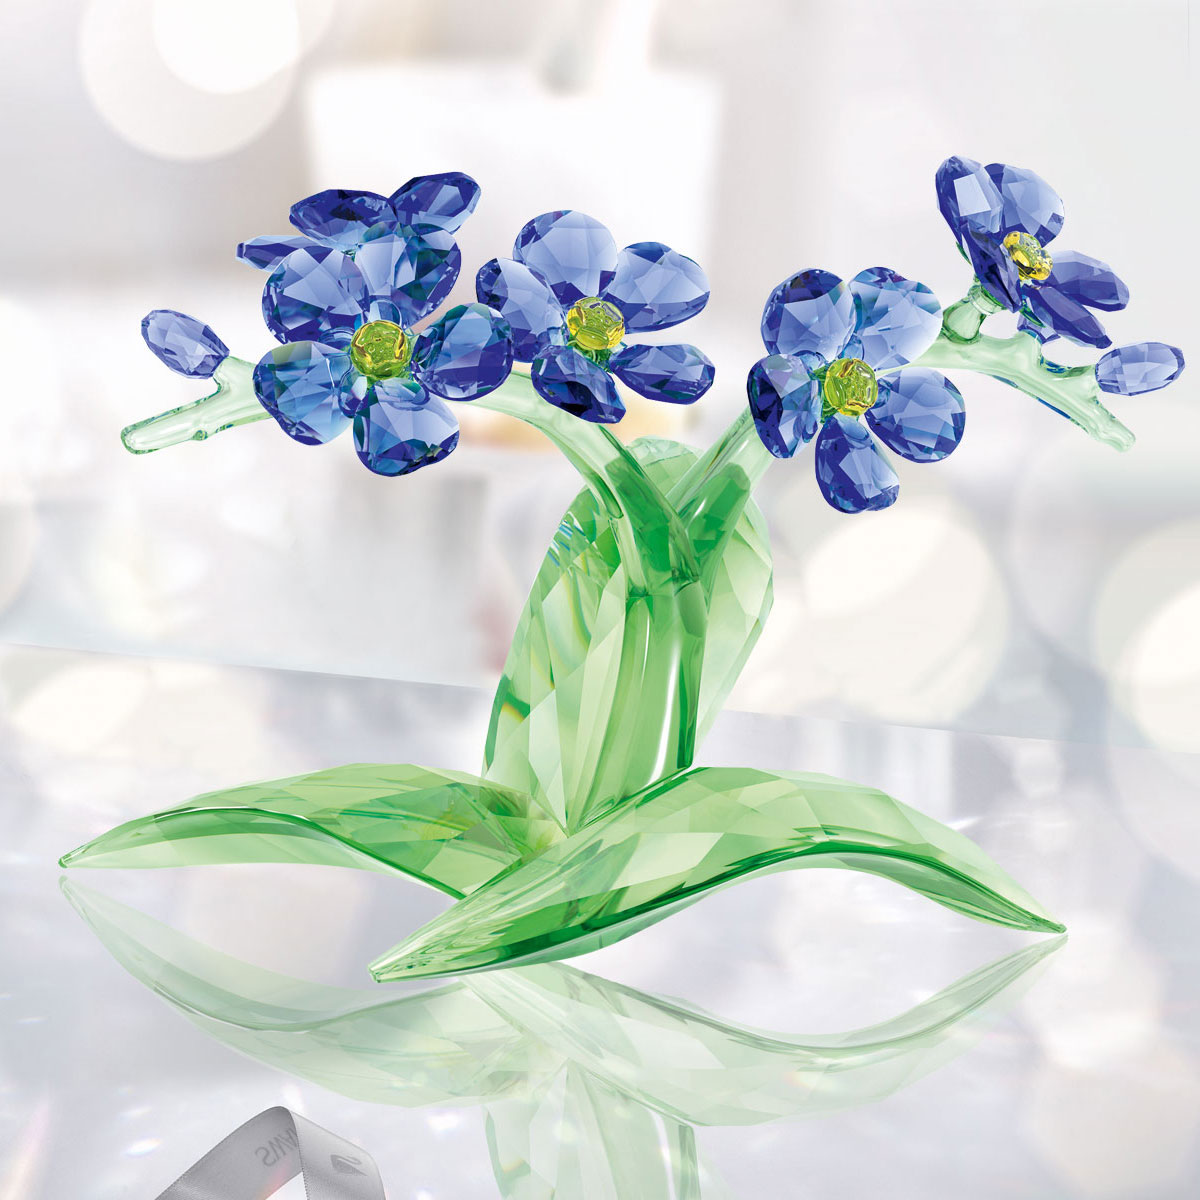 Swarovski Crystal Paradise Forget Me Not Crystal Sculpture